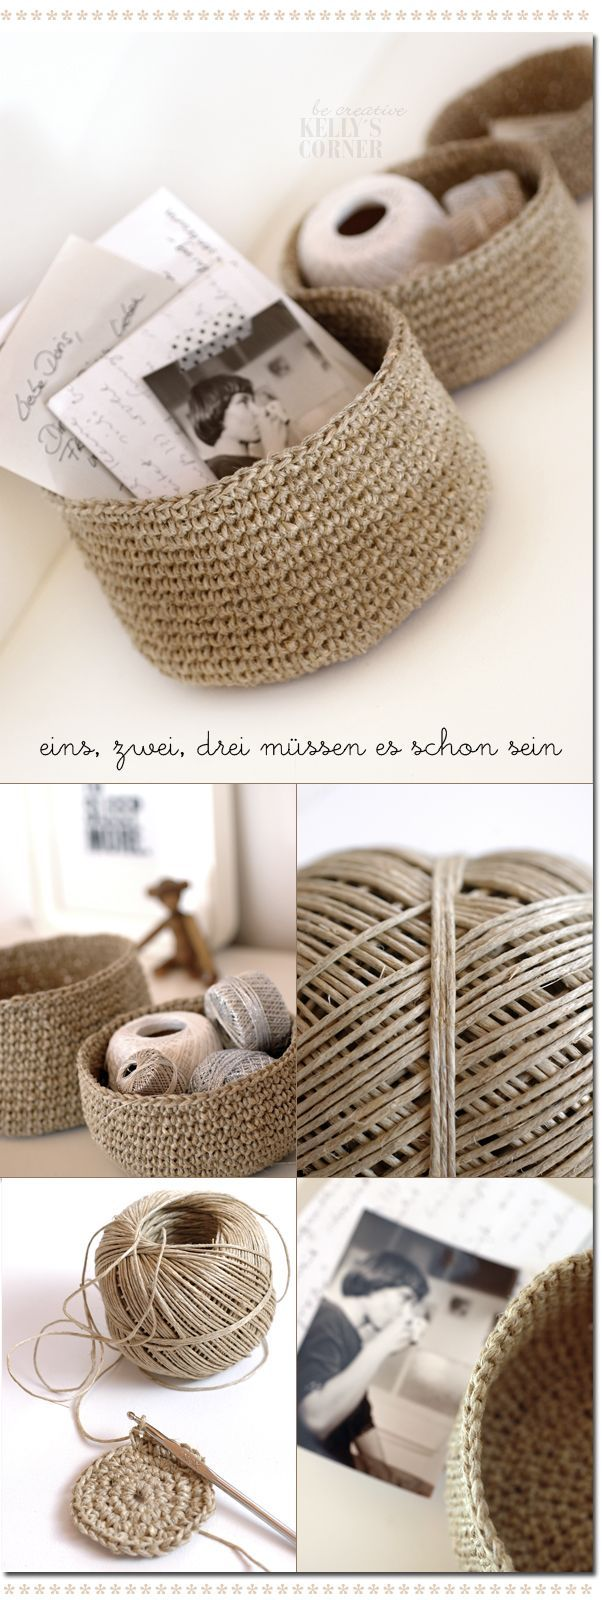 Twine crochet baskets